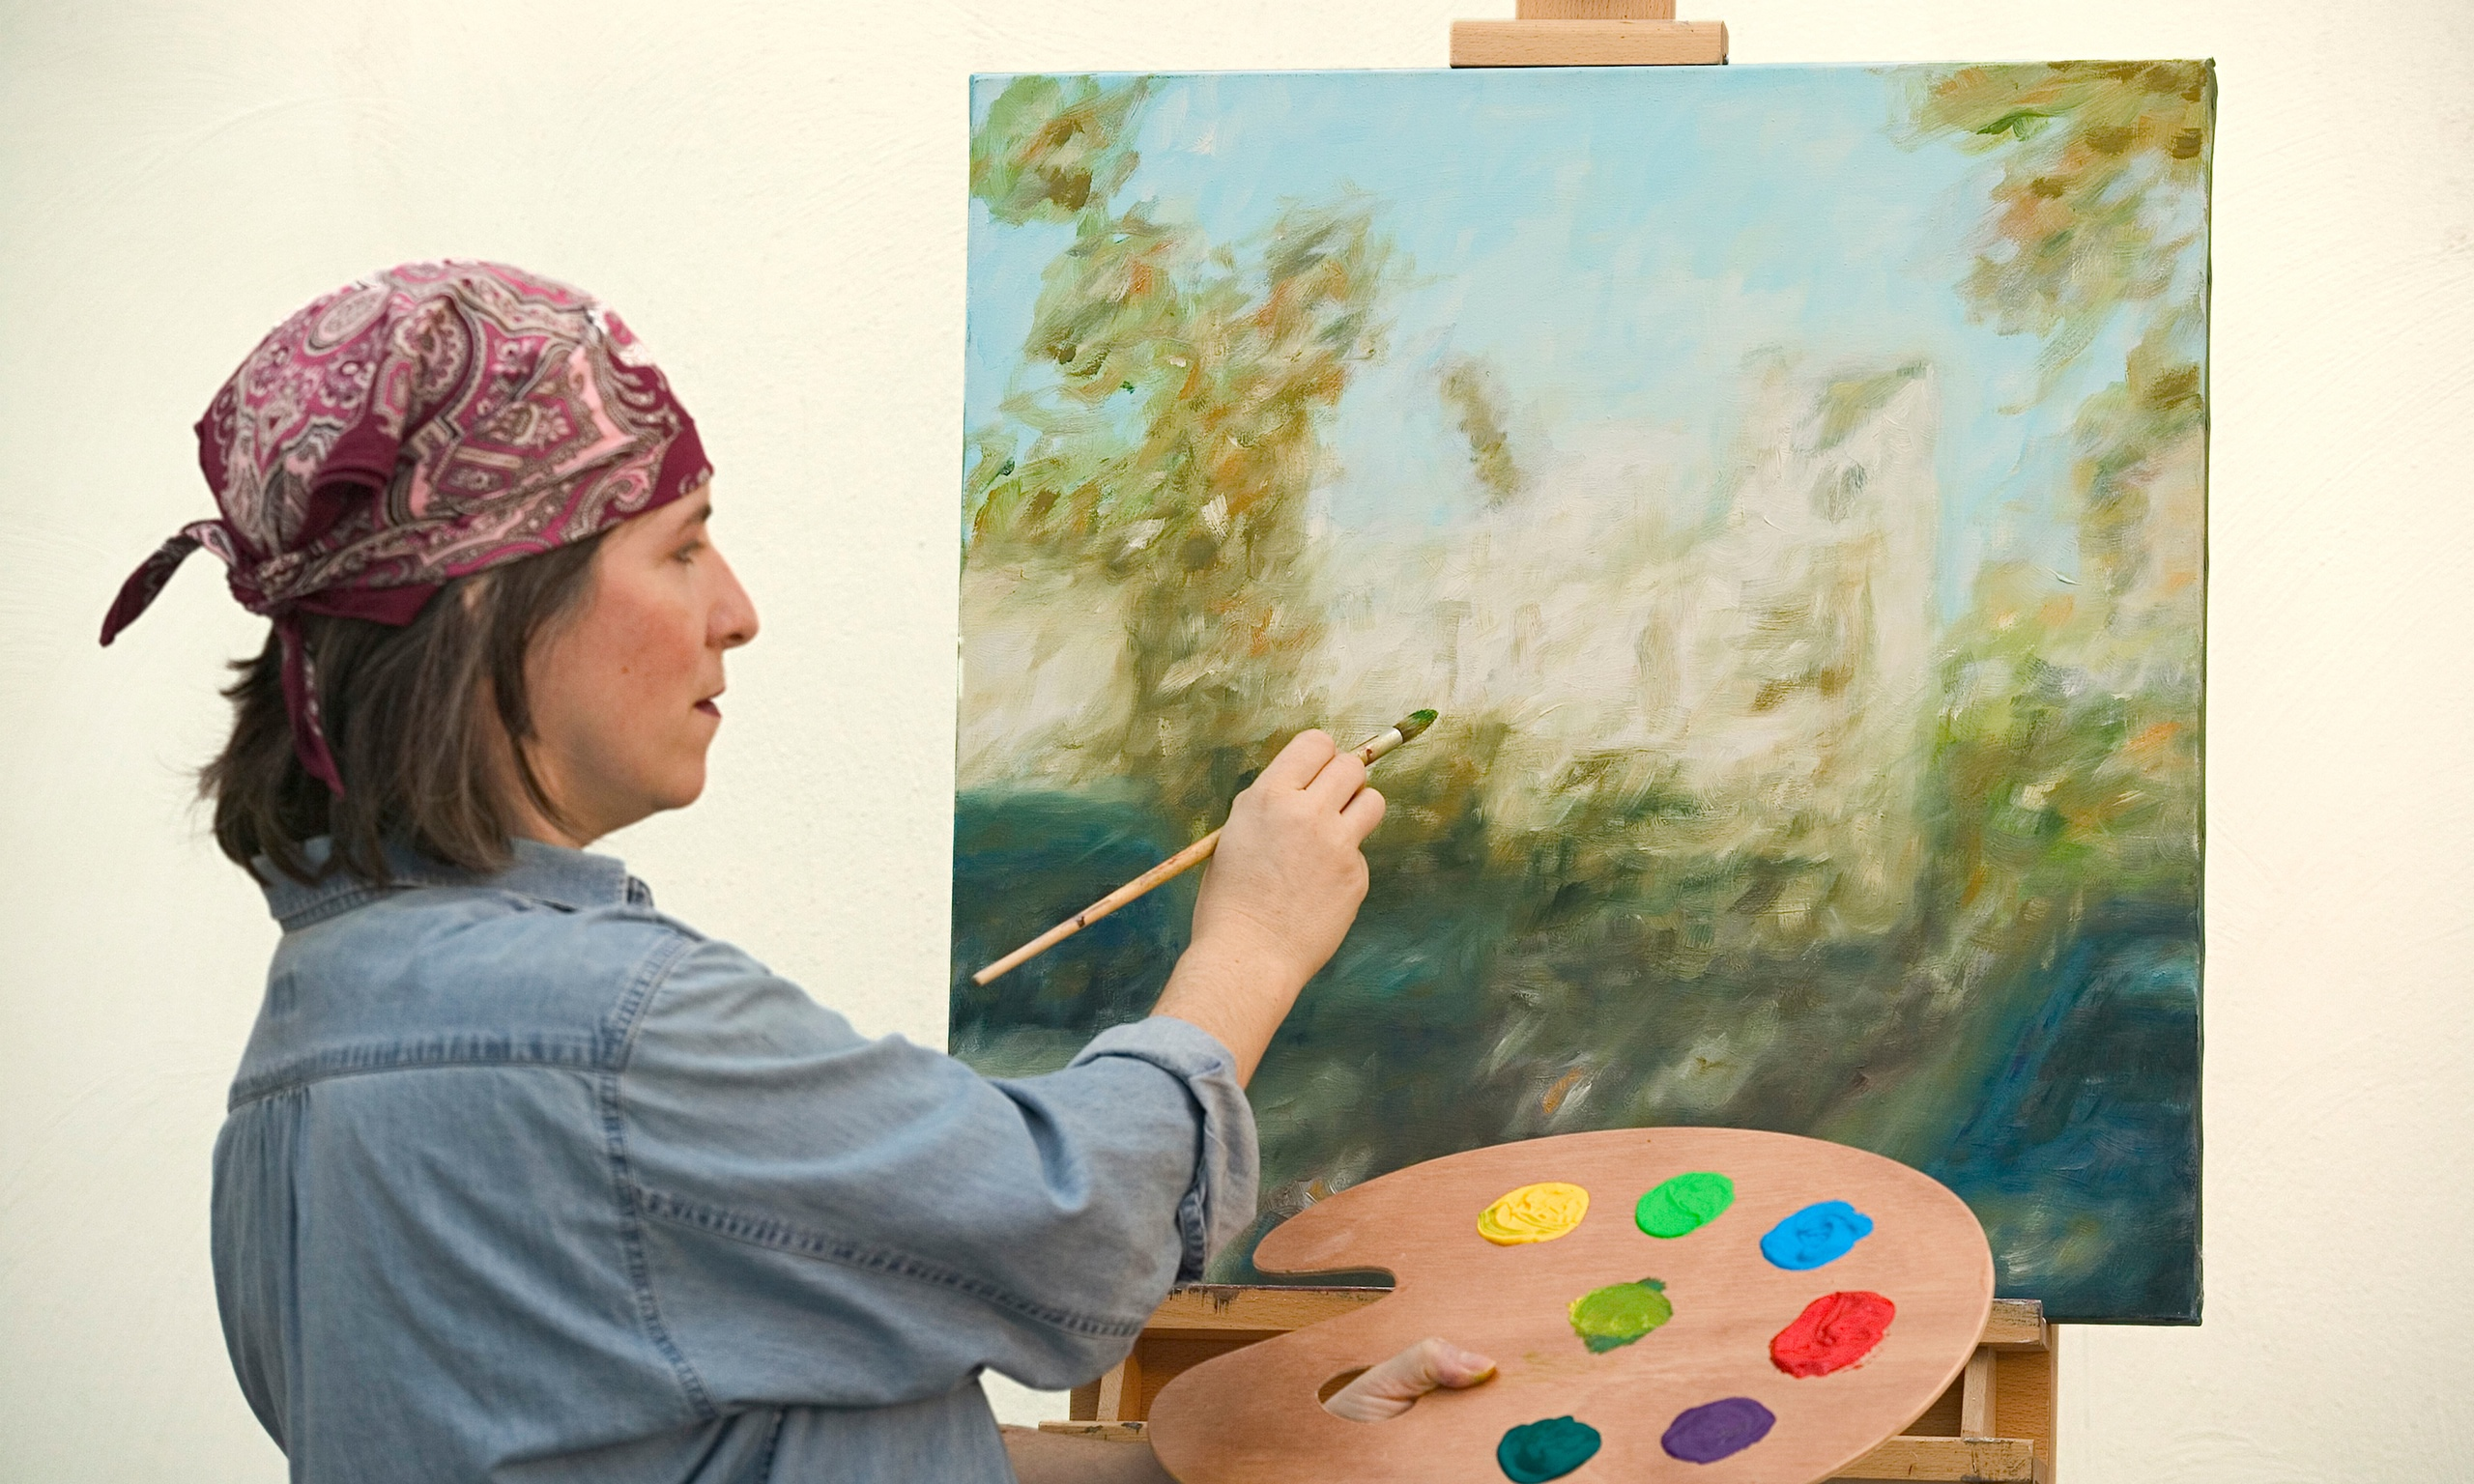 how much do you know about careers in the art world